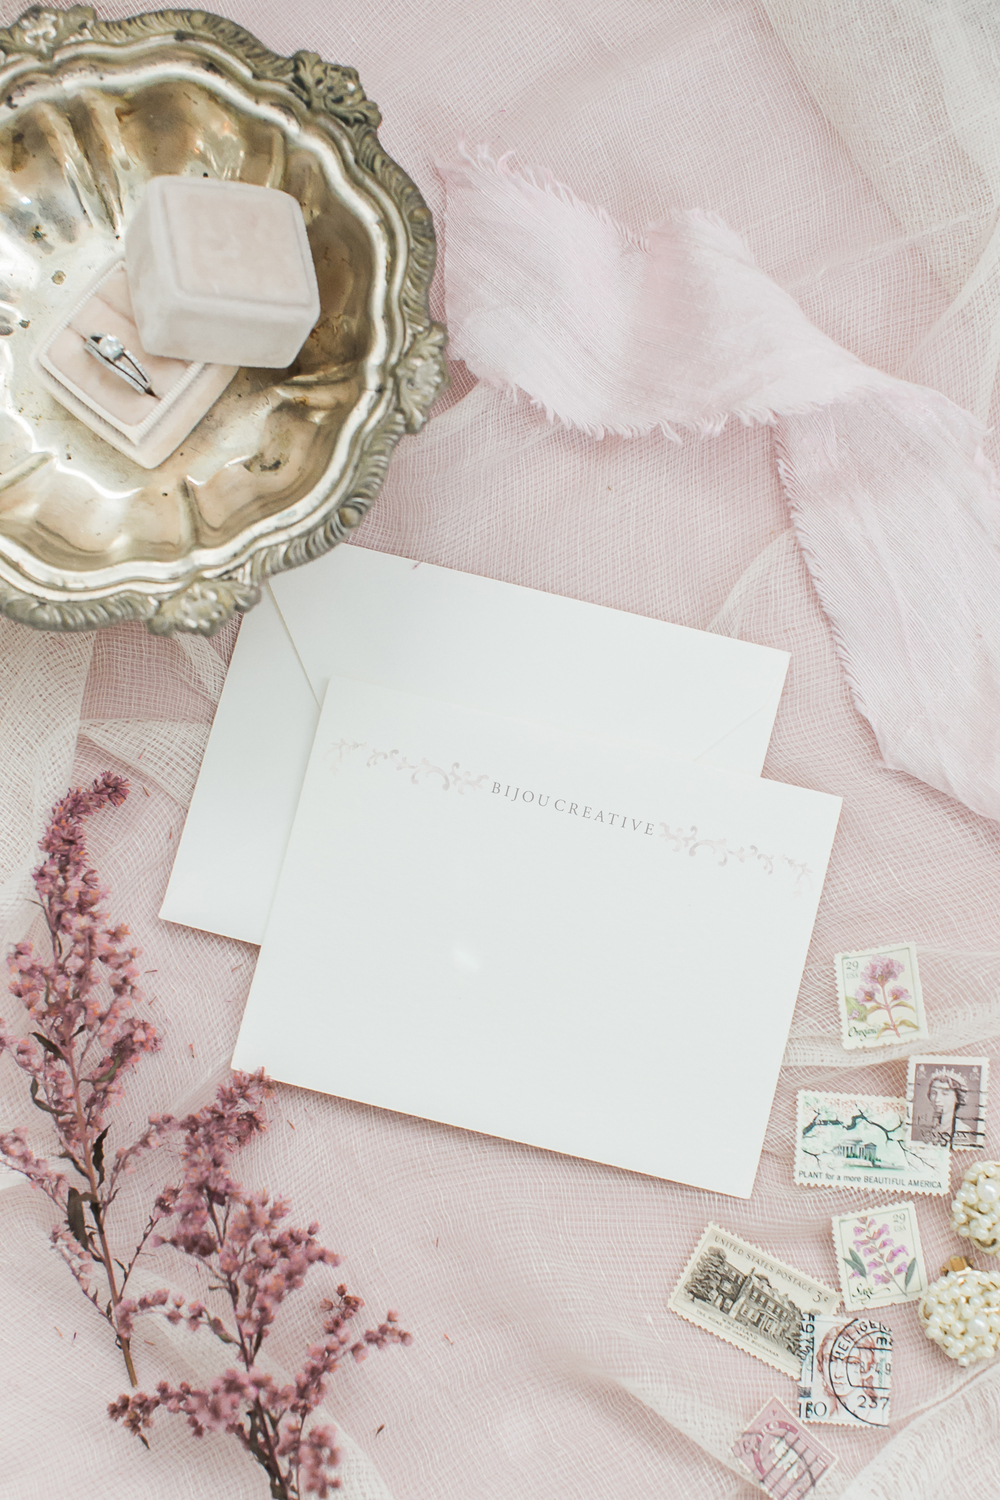 feminine romantic brand design by Crème Brands